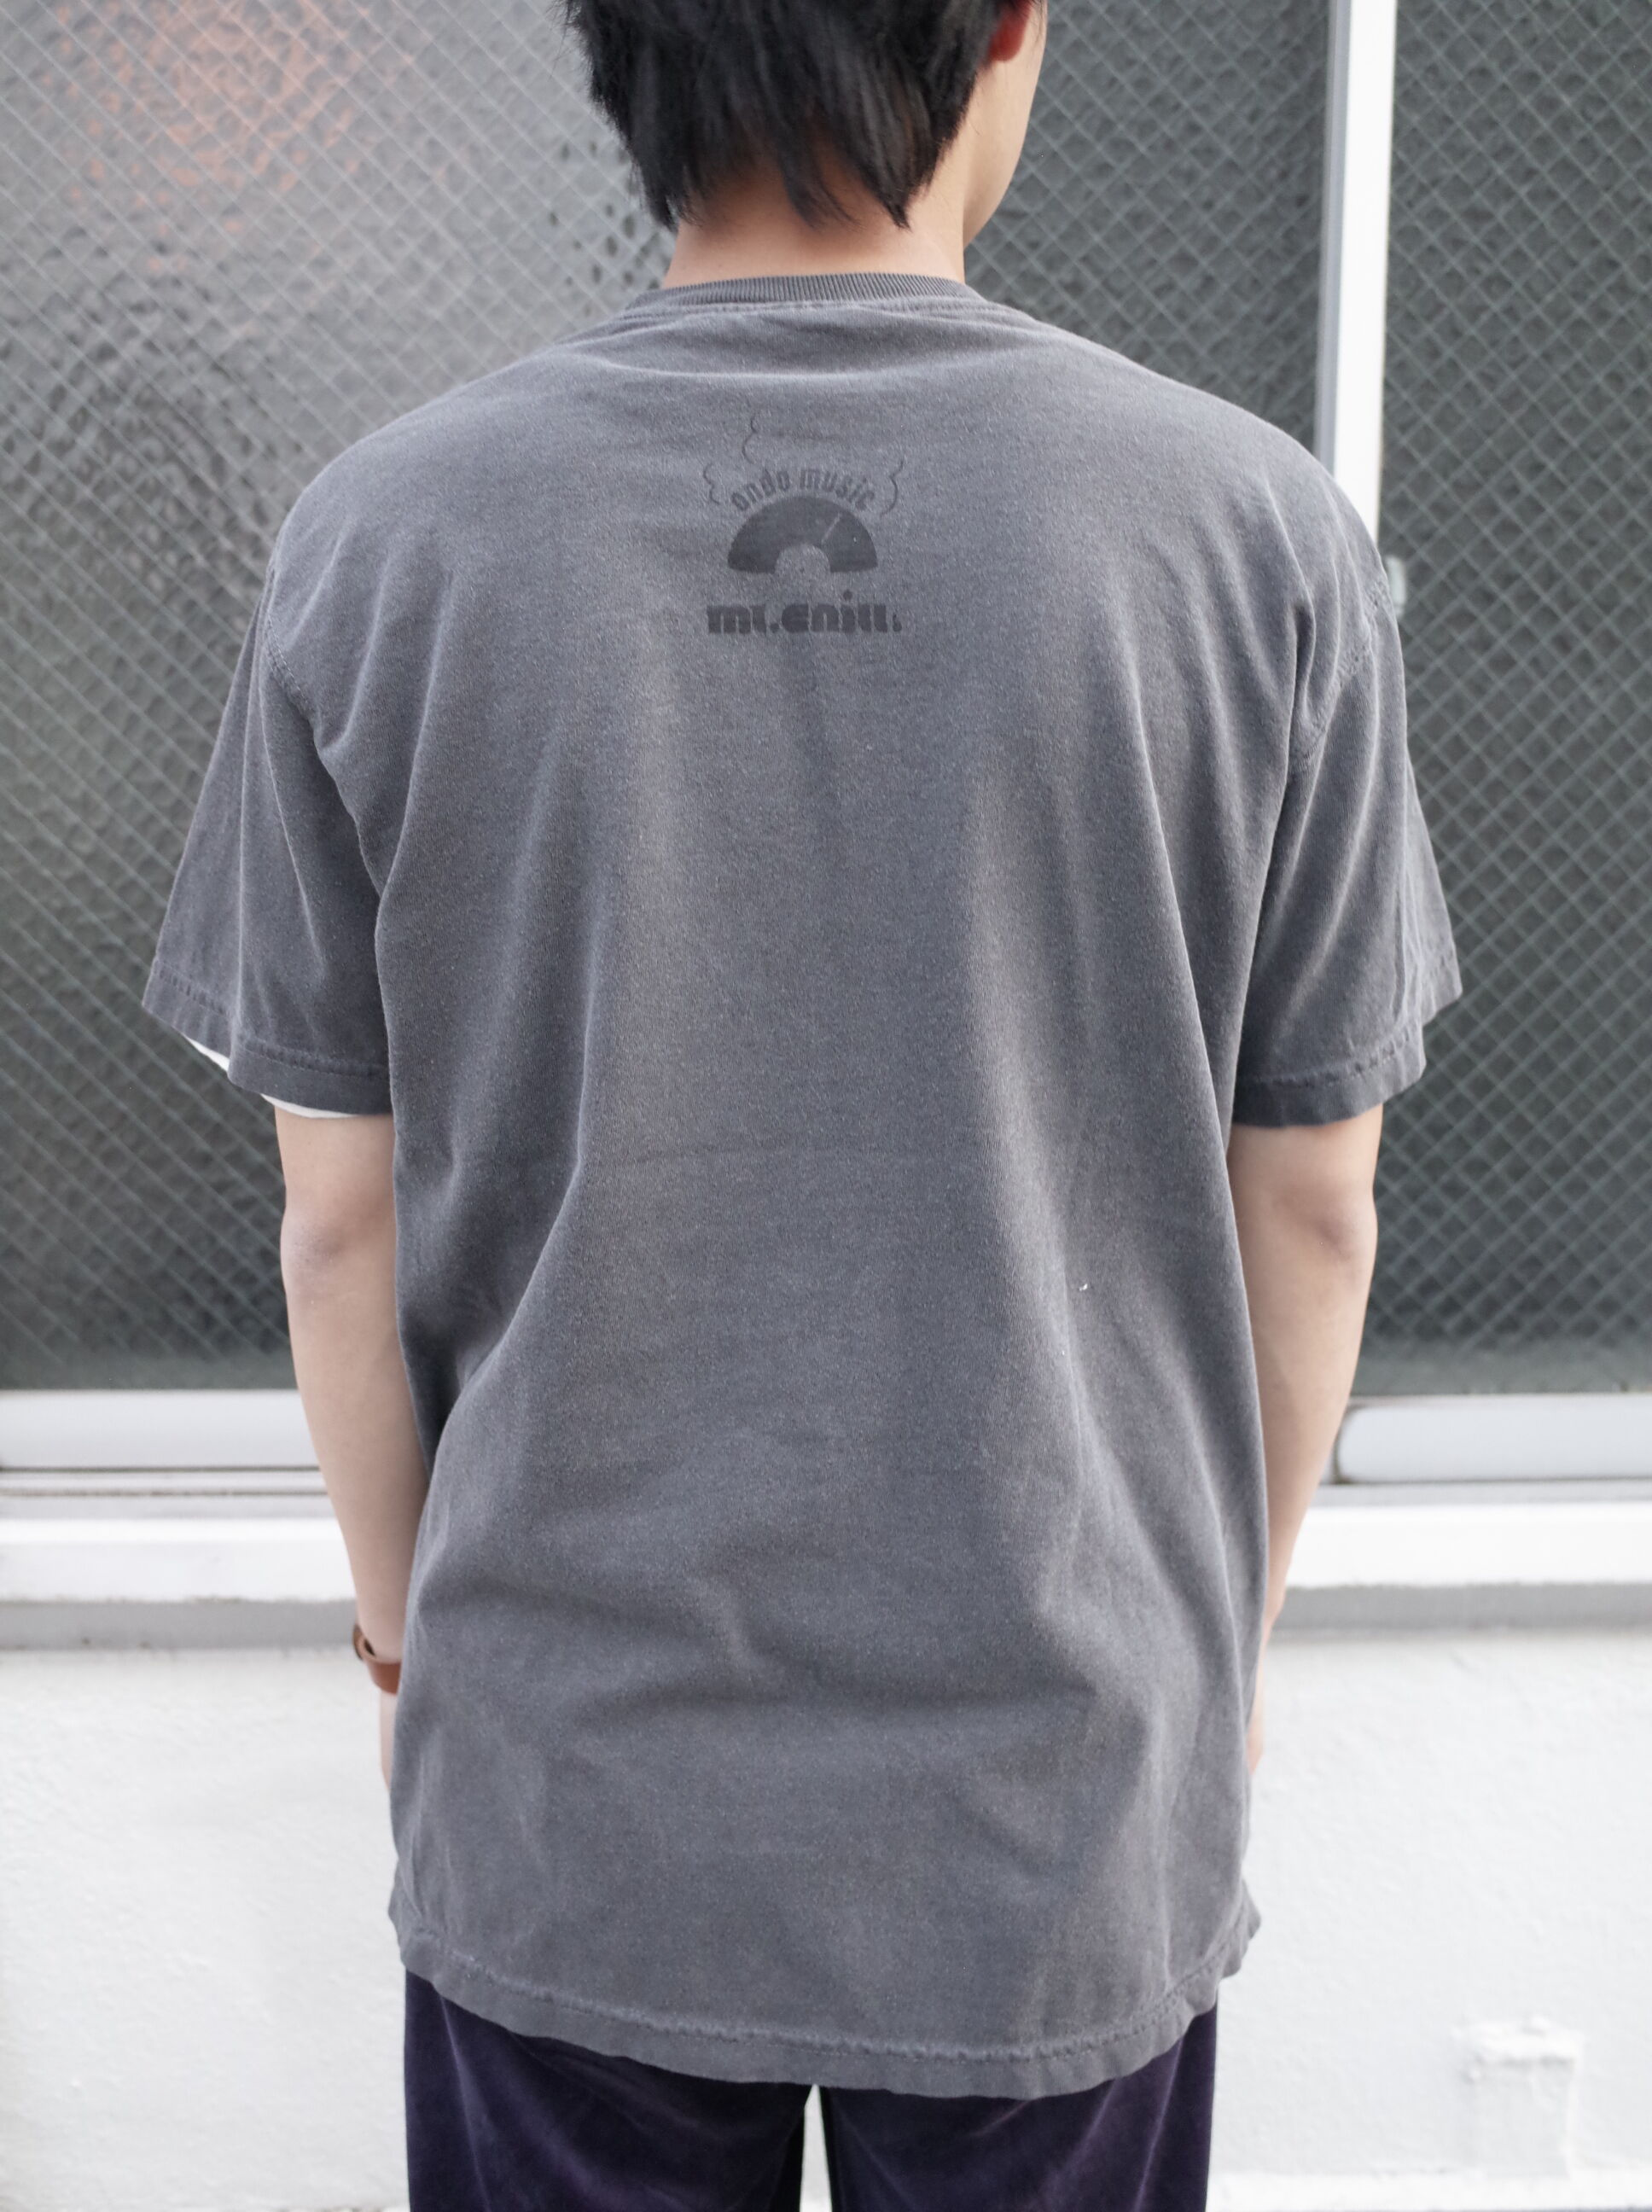 CHILL MOUNTAIN - 「Under the laundromat」RemixCollage T-shirts wash black Size L : WEAR gallery 0